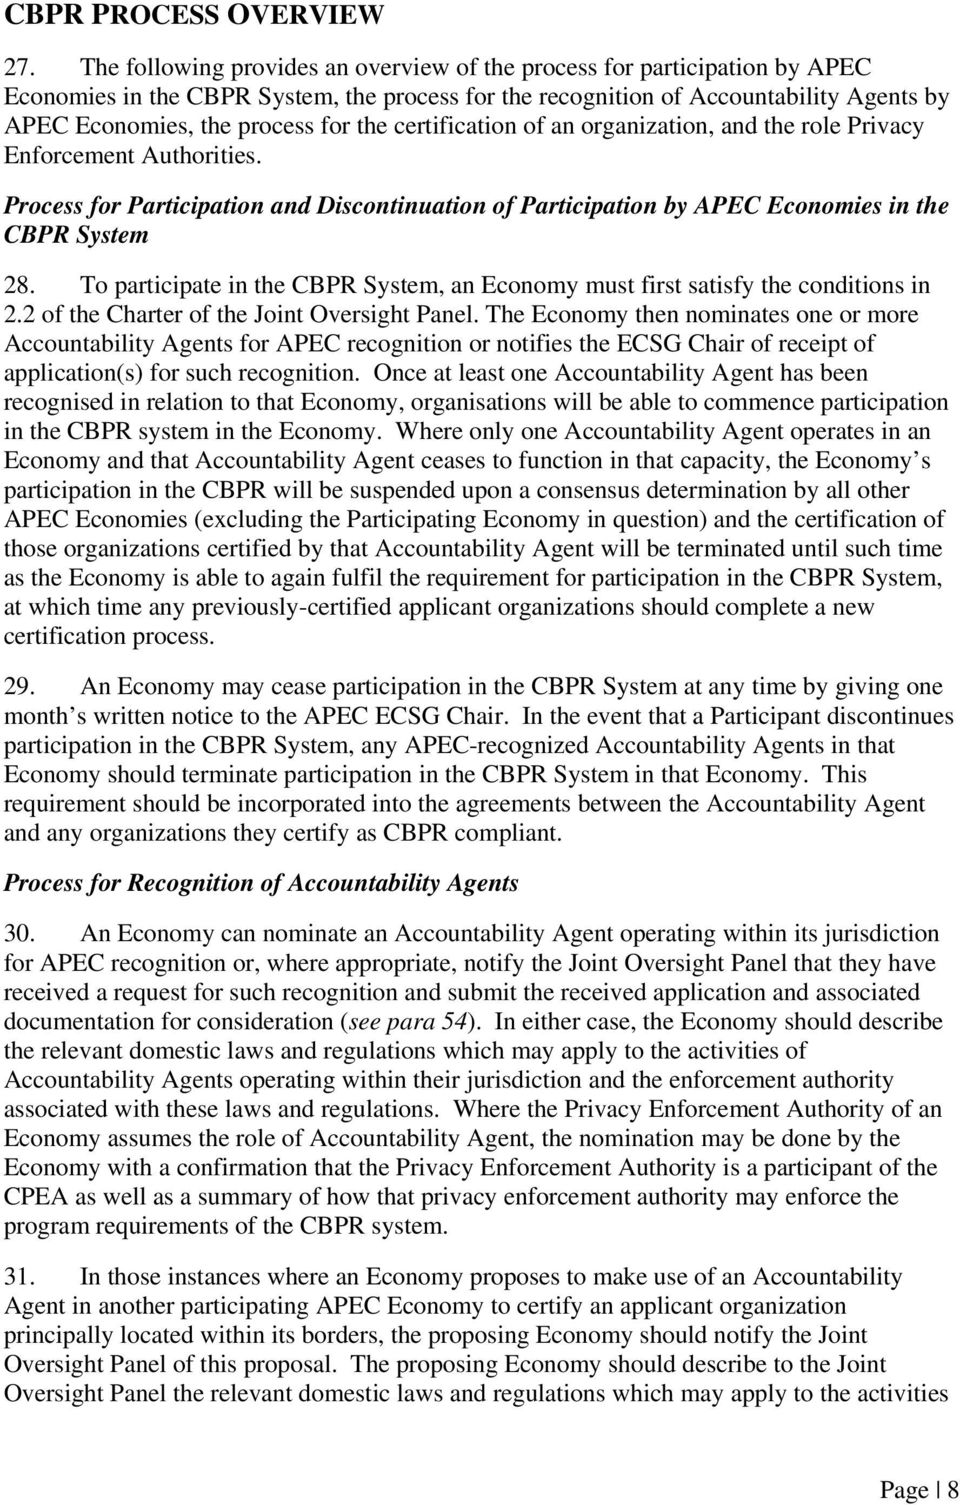 the certification of an organization, and the role Privacy Enforcement Authorities. Process for Participation and Discontinuation of Participation by APEC Economies in the CBPR System 28.